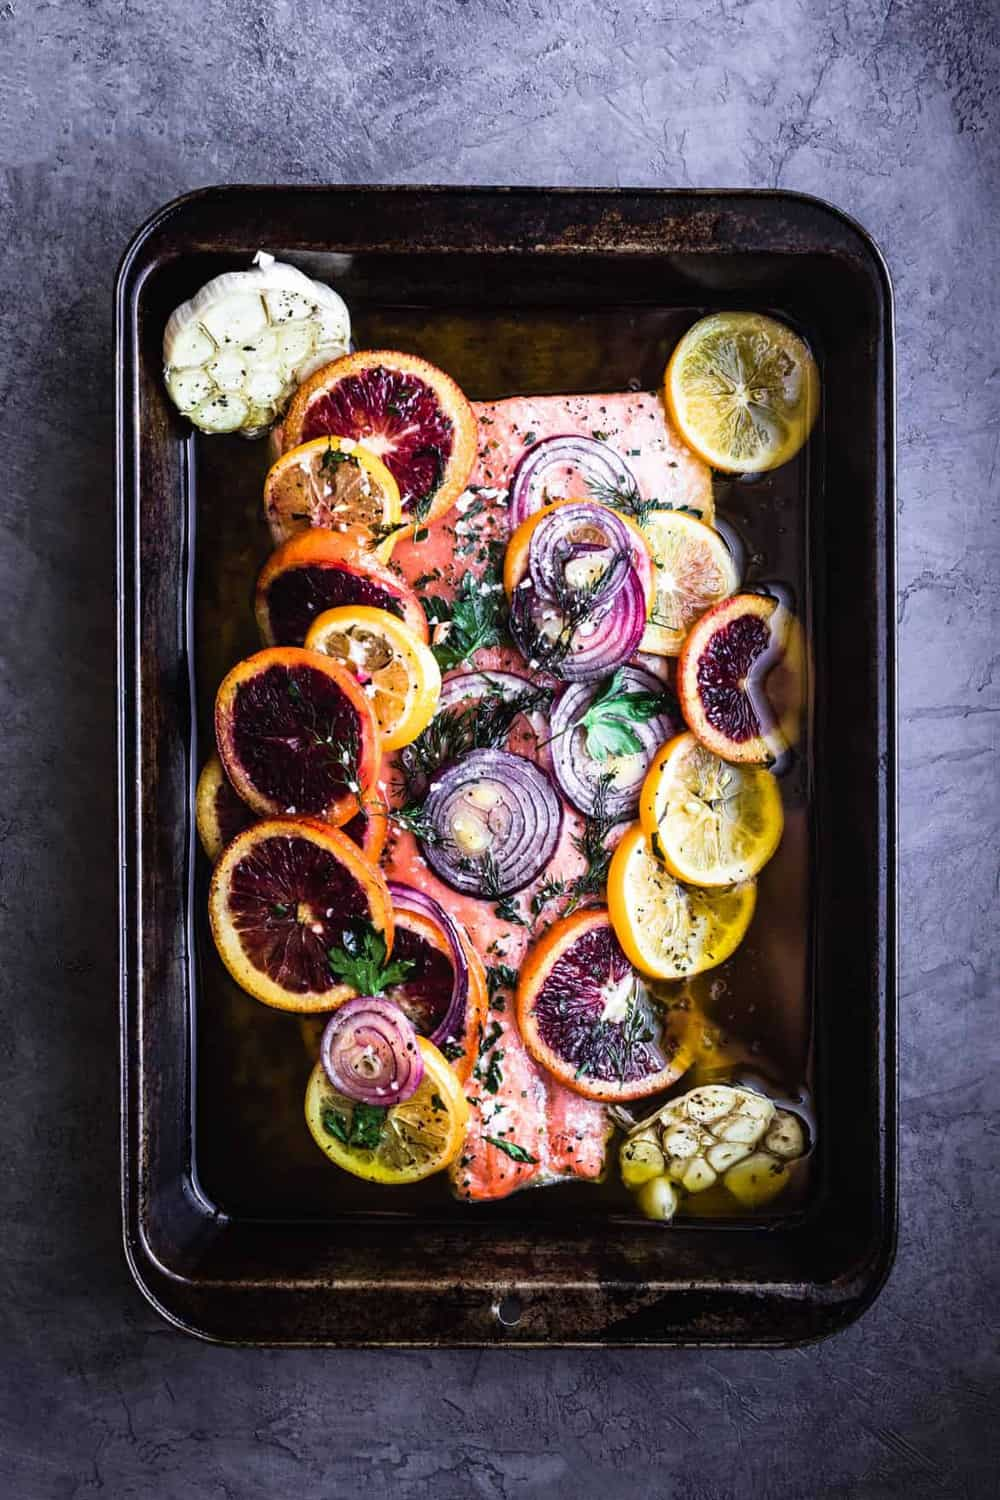 Fresh Citrus and Herb Roasted Salmon. Post-oven with blood oranges, lemons, red onions, dill, parsley, salt and pepper on the salmon.